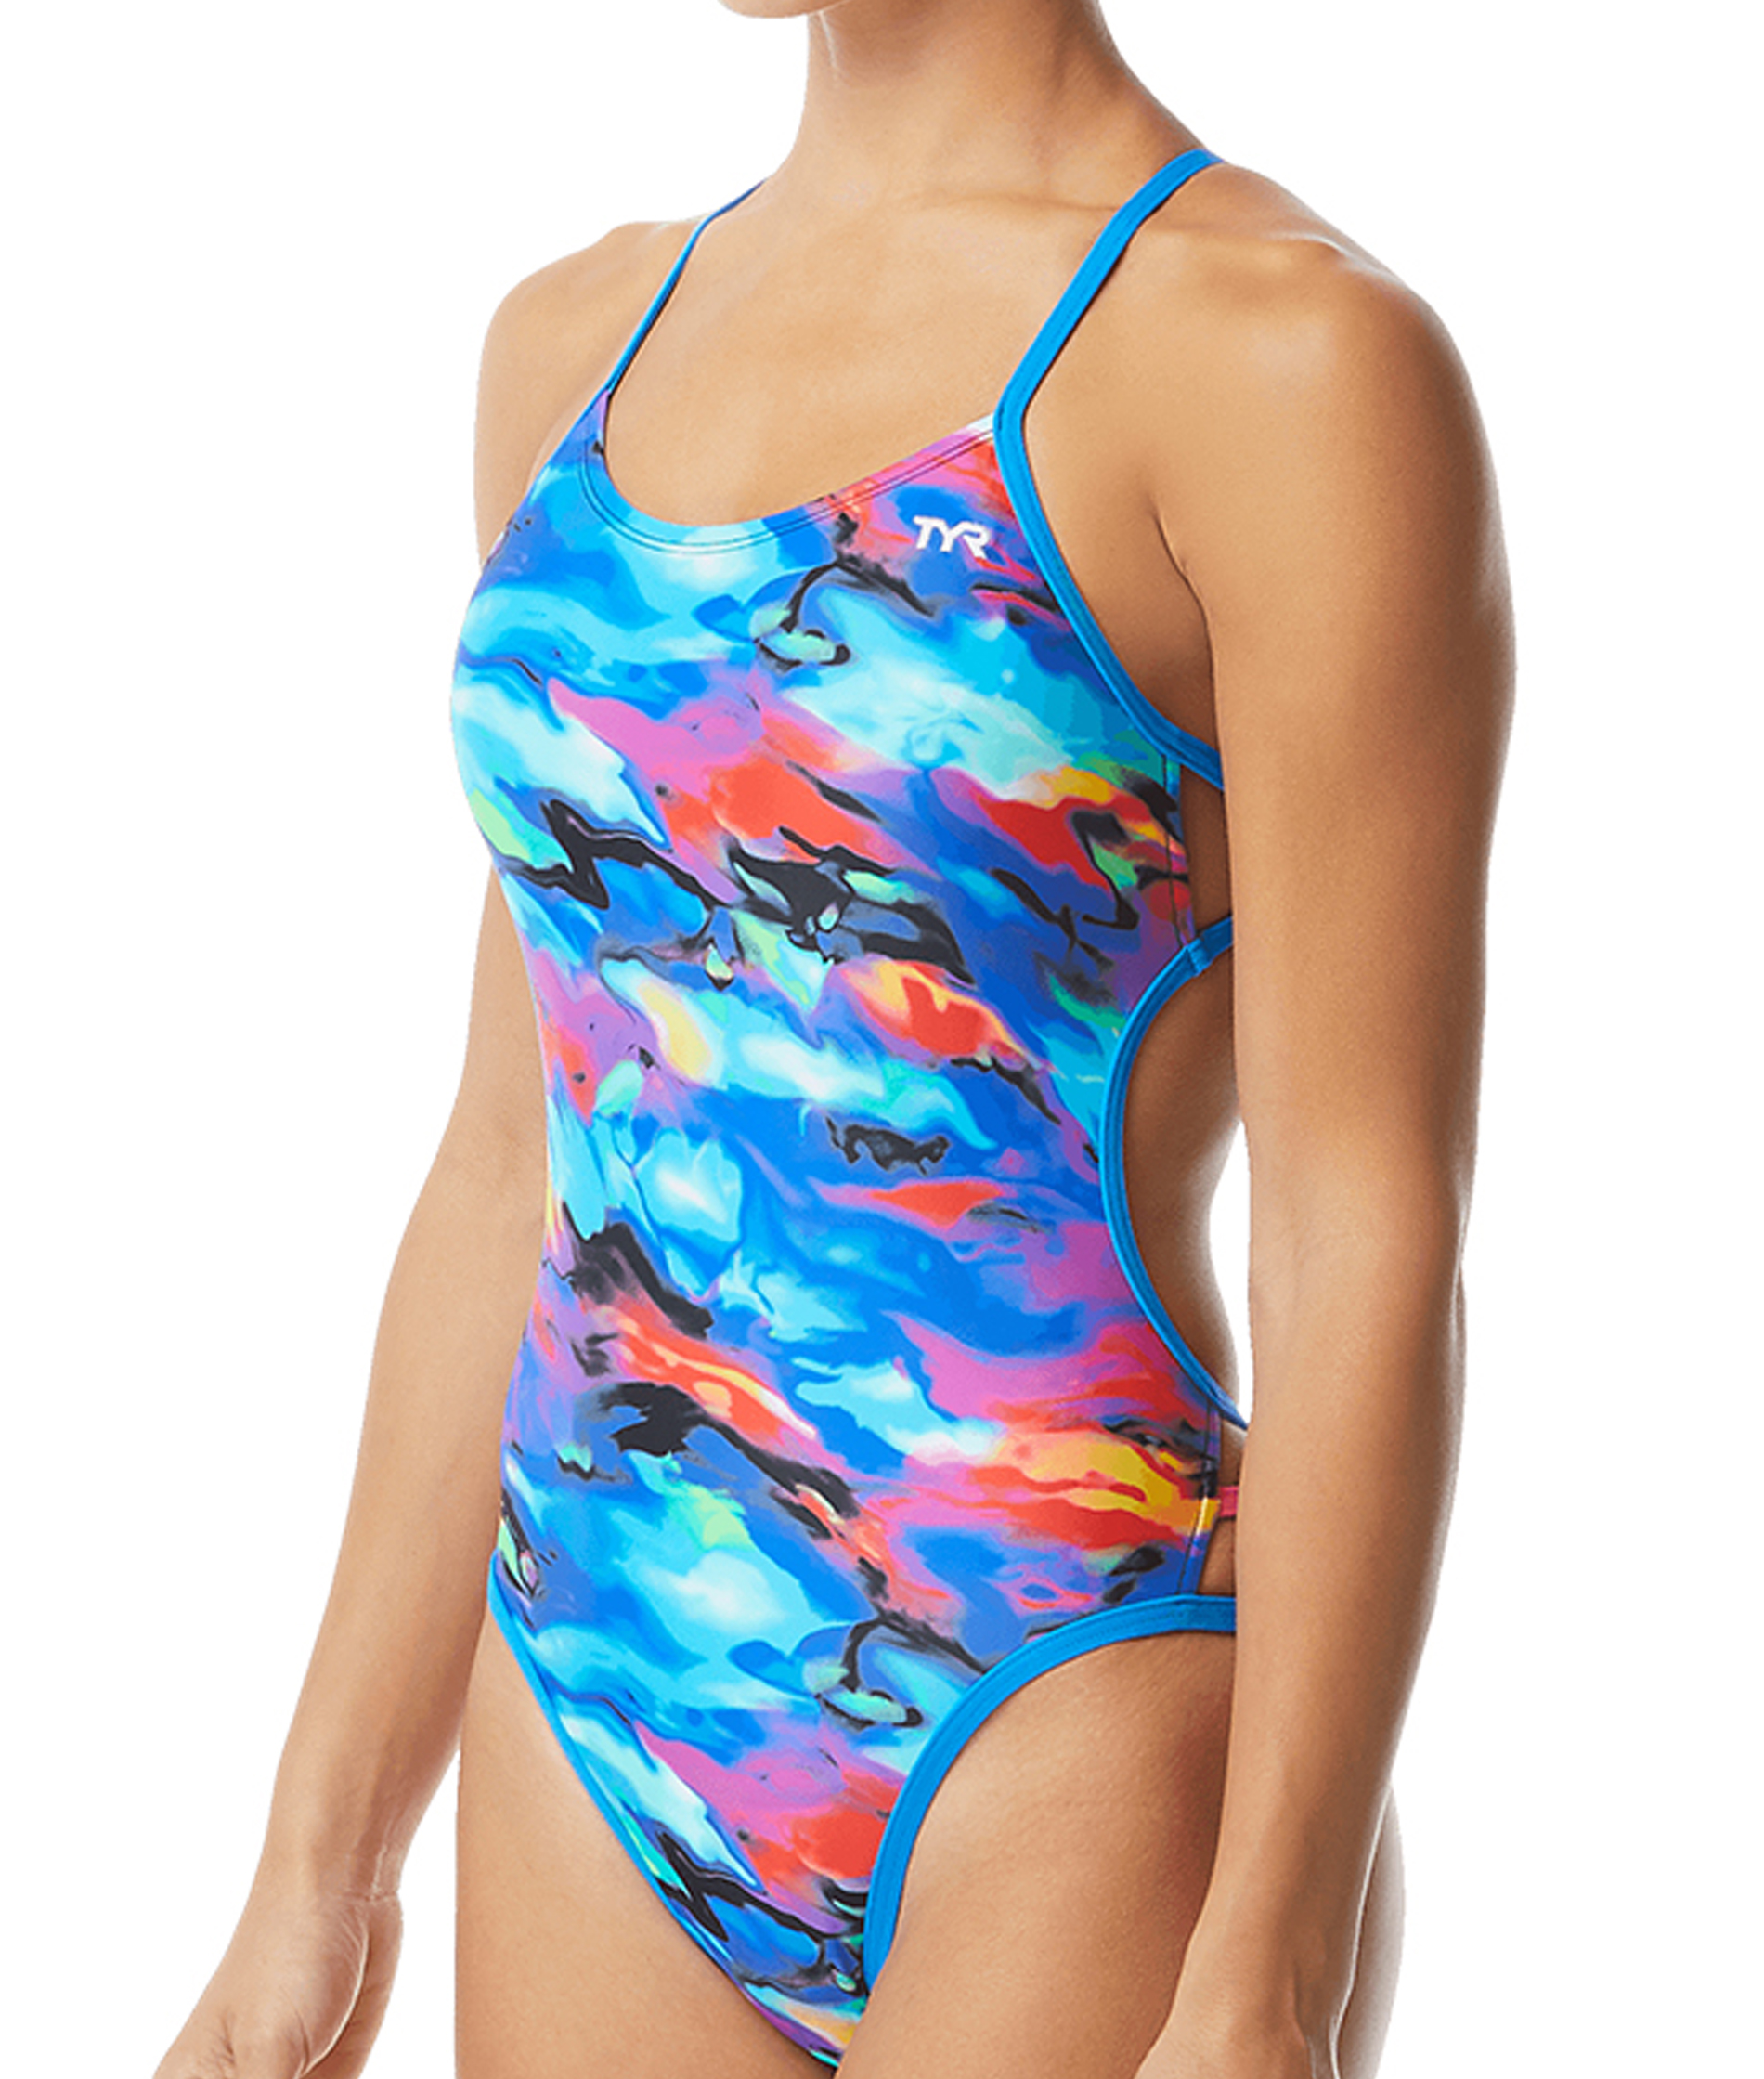 TYR Ladies Synthesis Mojave Cutoutfit Swimsuit - Blue/Multi